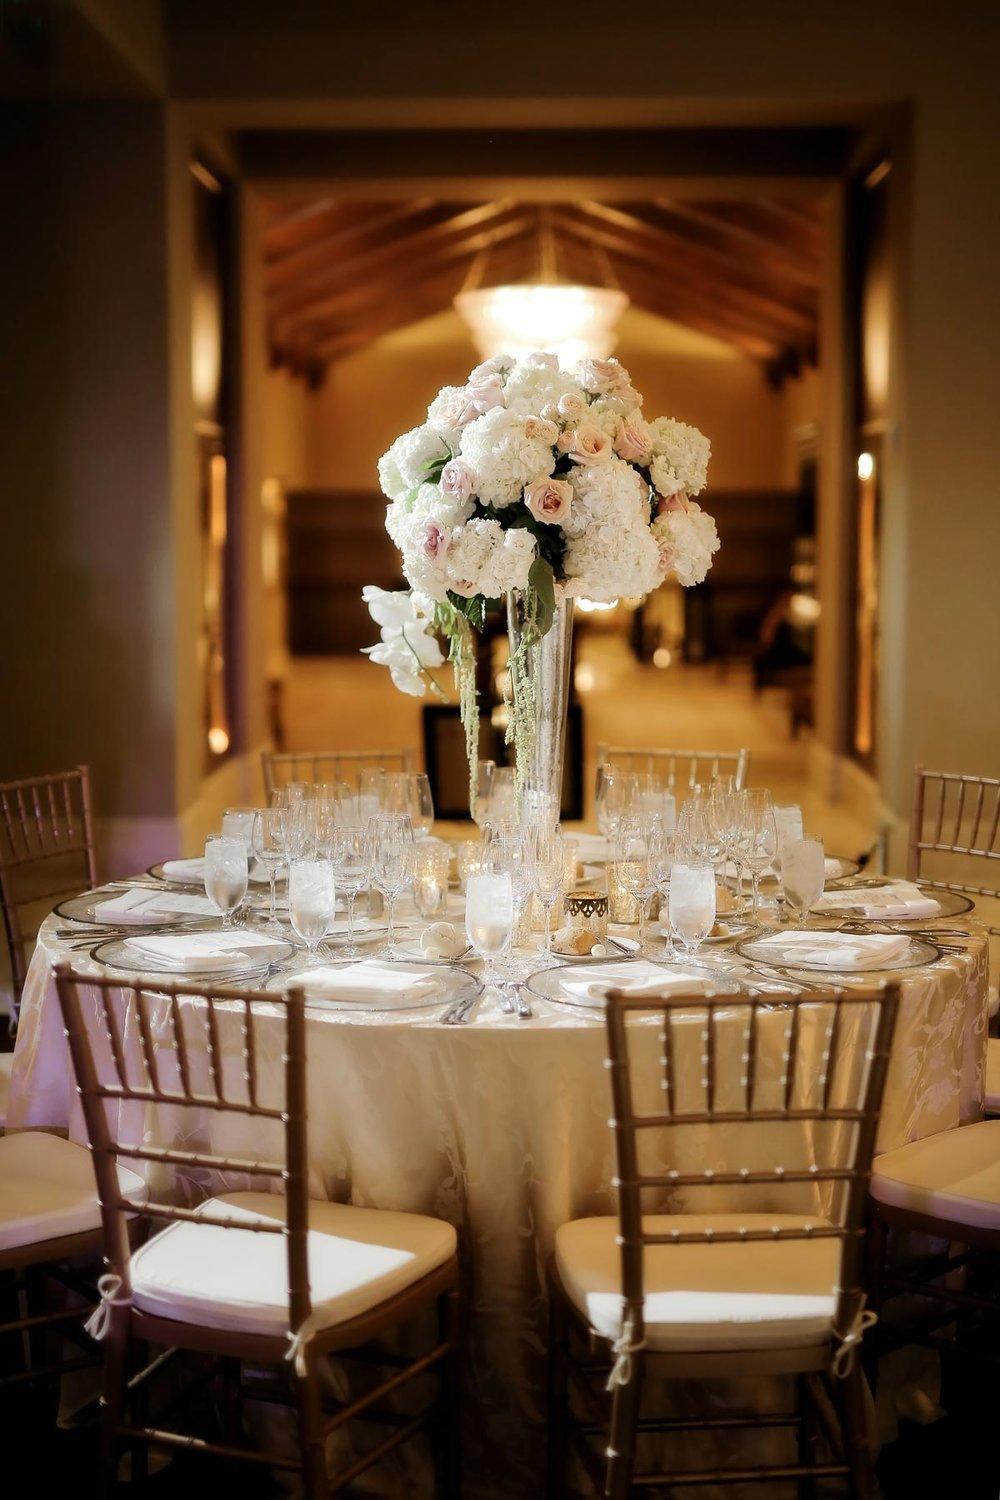 centerpieces-utah-weddings-elegant-deer-valley-weddings-pepper-nix-photography.jpg